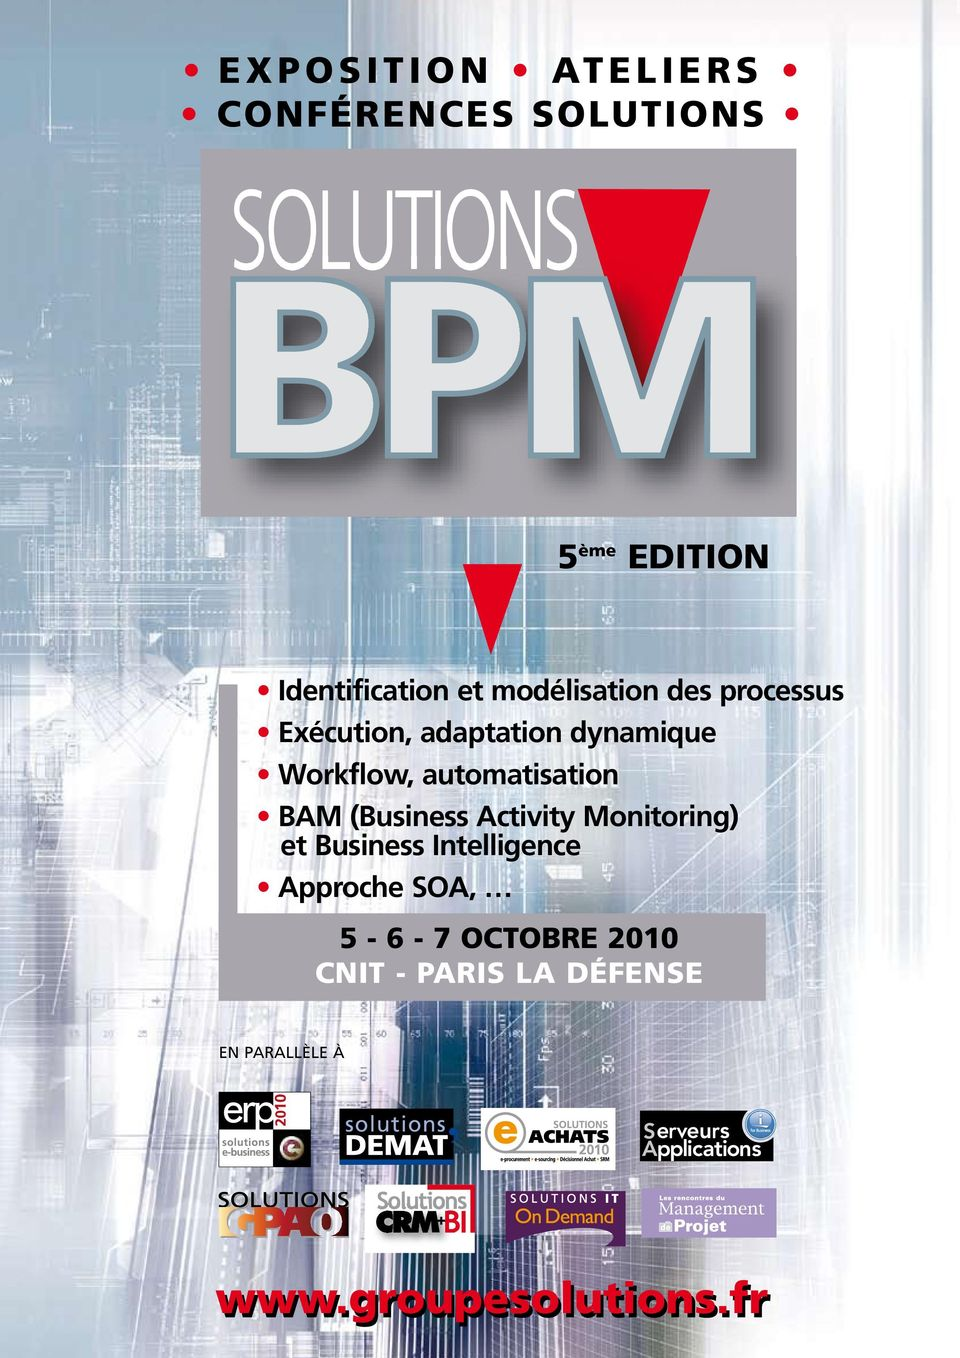 automatisation BAM (Business Activity Monitoring) et Business Intelligence